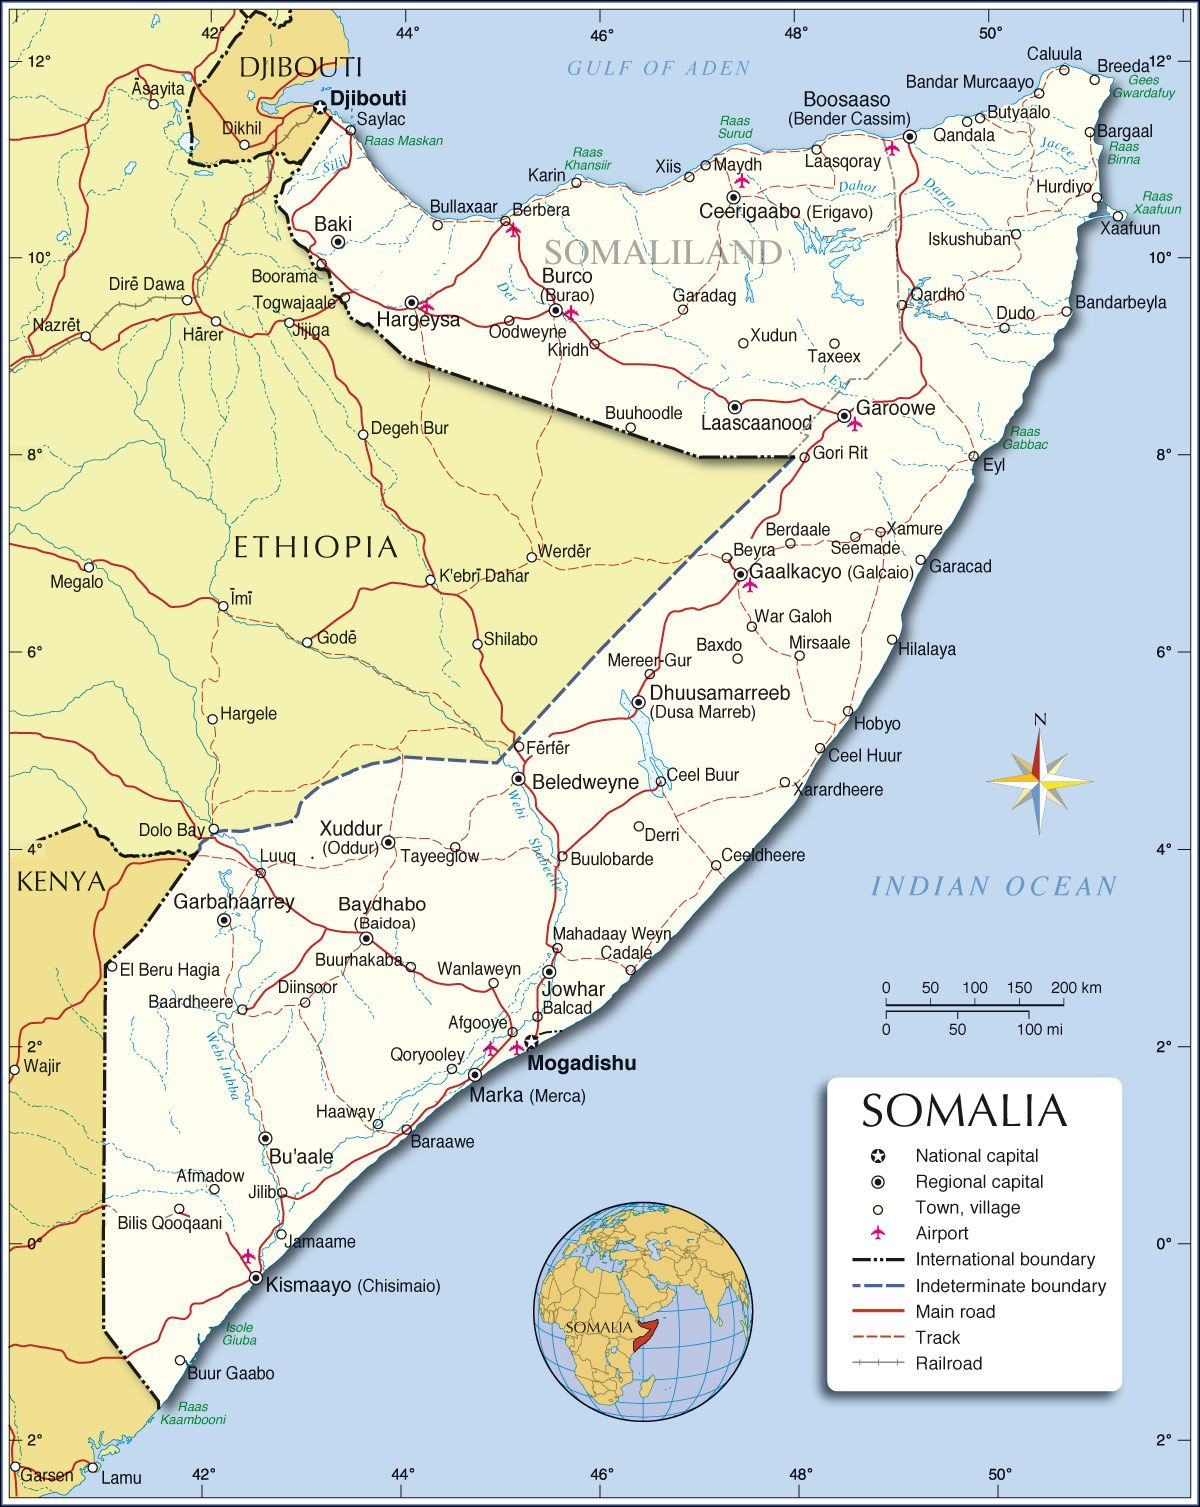 Political Map of SomaliaThe Map is showing Somalia, a ... on map of senegal africa, map of rwanda africa, map of morocco africa, map of somaliland africa, map of tanzania africa, map of africa with countries, map of gabon africa, map of madagascar africa, map of zimbabwe africa, map of kenya africa, map of ghana africa, map of nigeria africa, map of south sudan africa, map of mauritius africa, physical map of africa, map of eritrea africa, map of mali africa, map of ethiopia africa, mogadishu africa, map of central african republic africa,